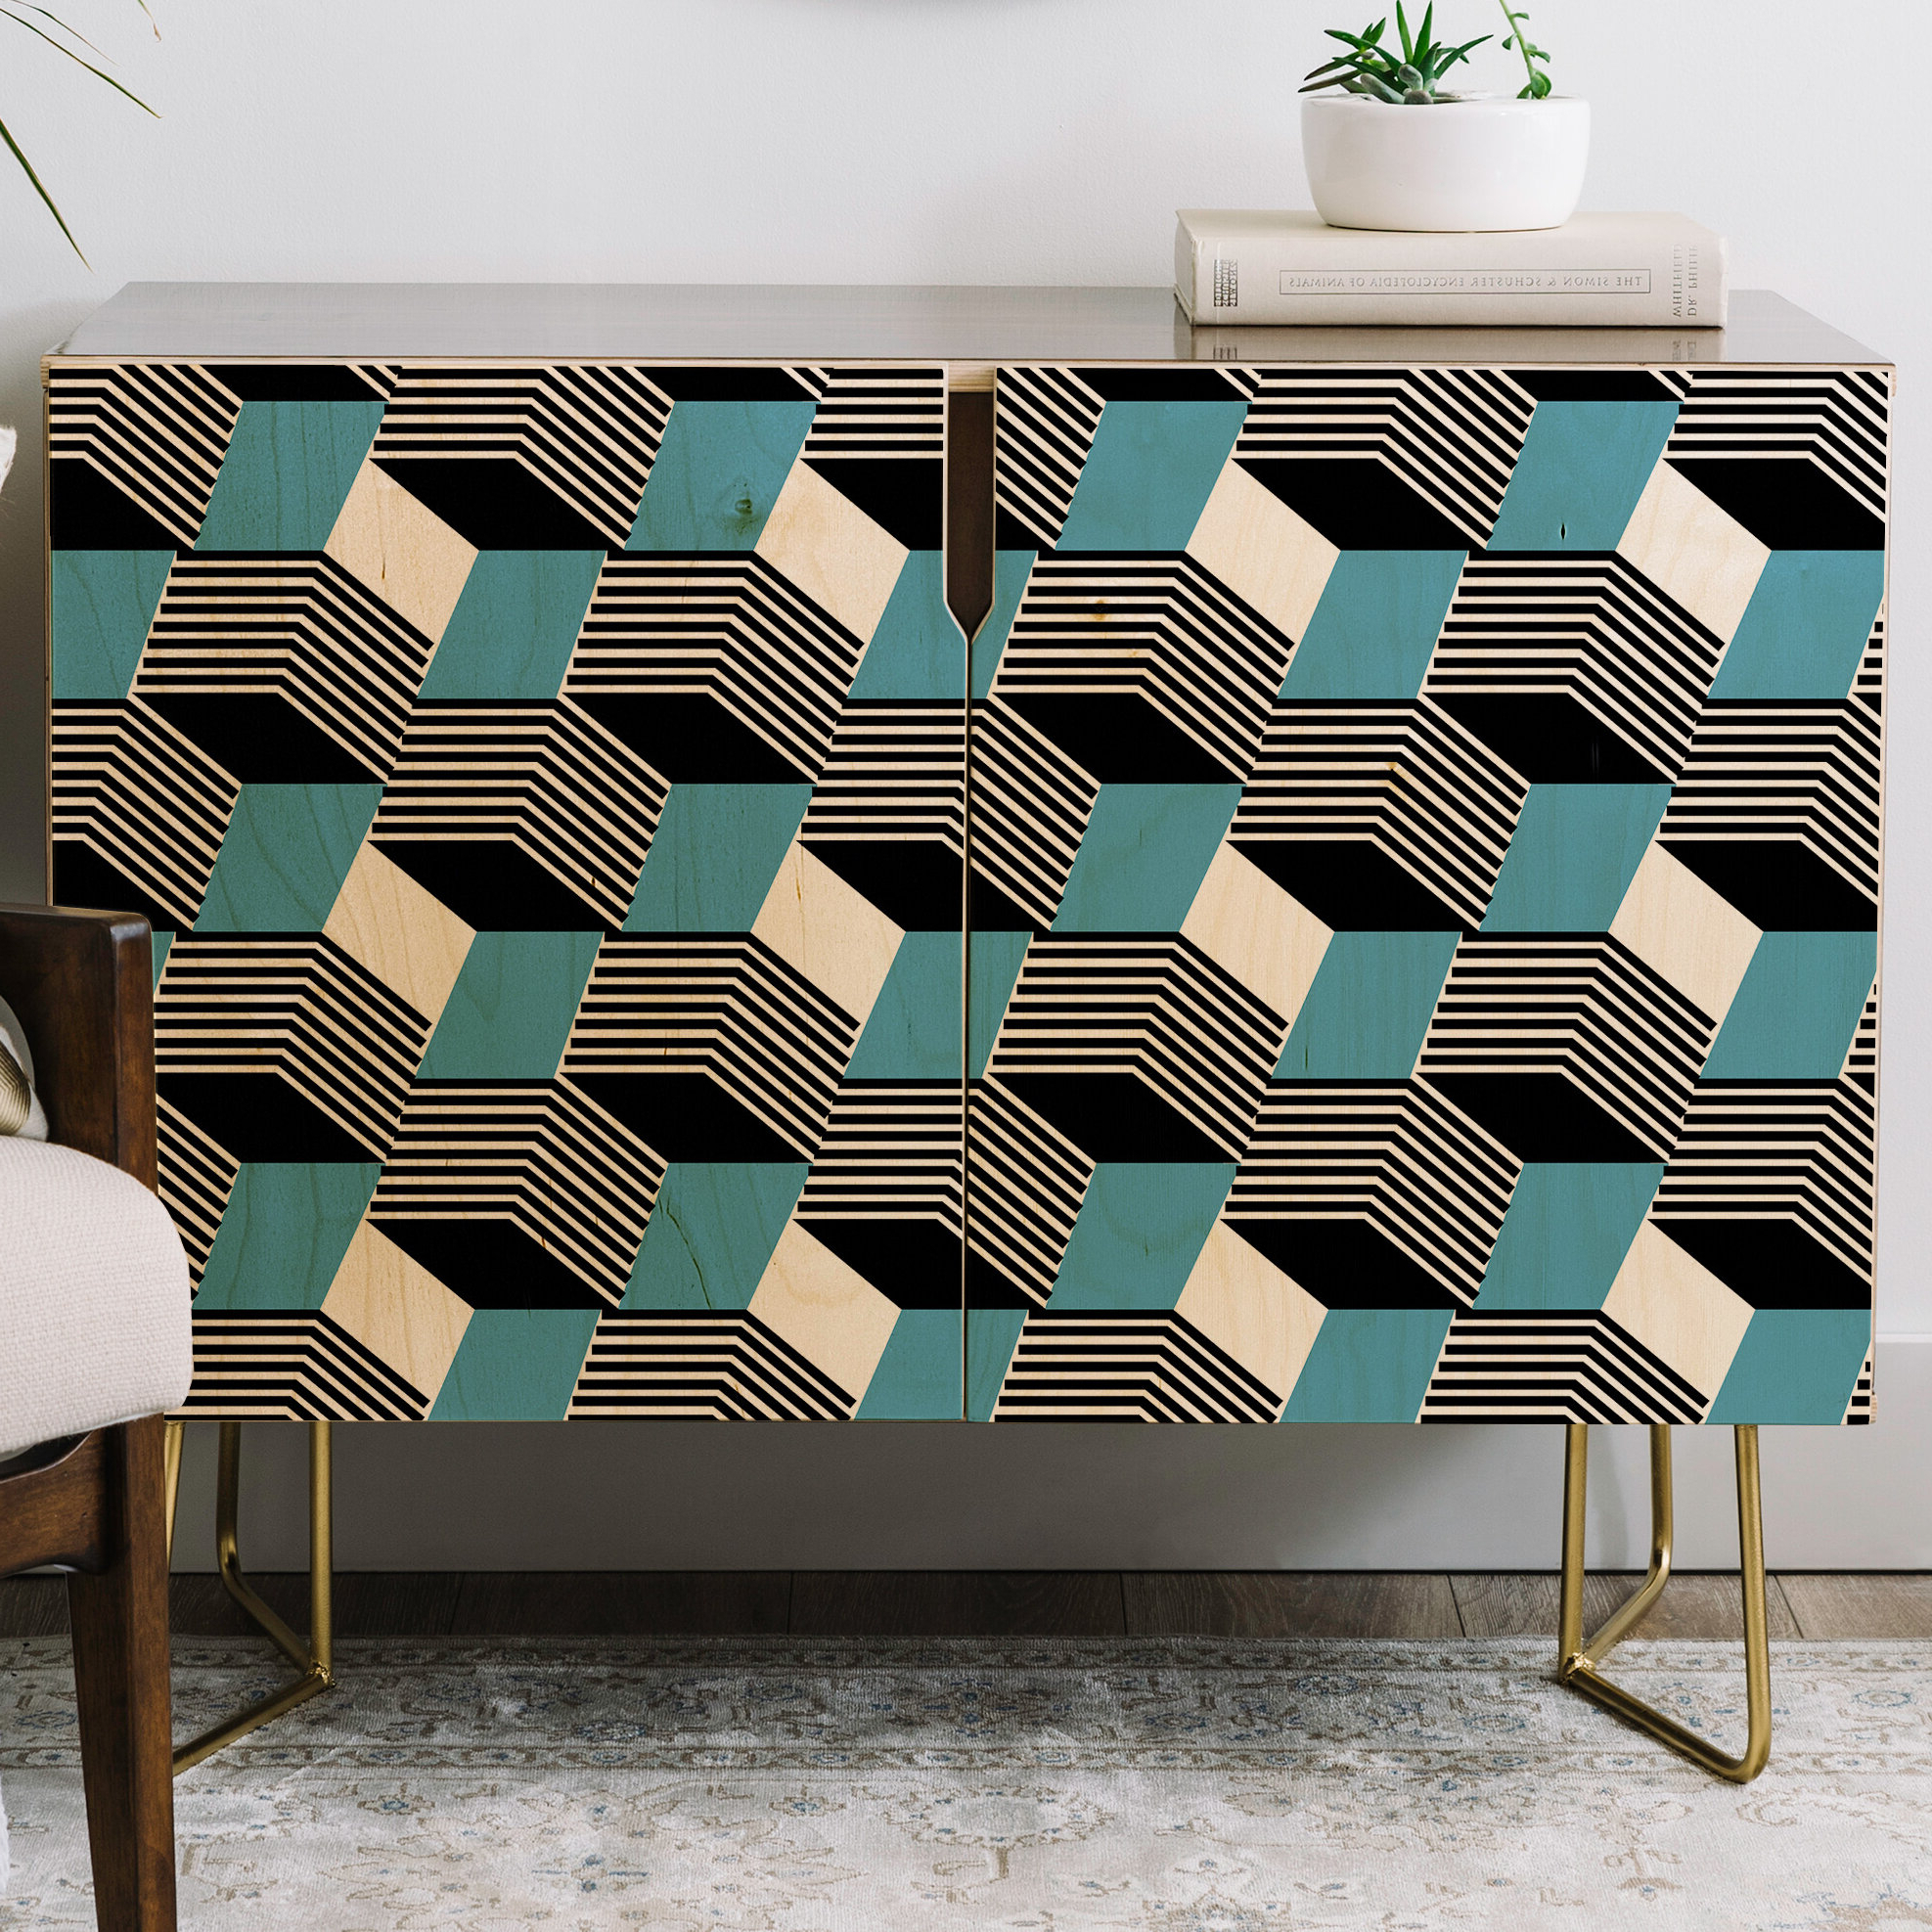 Gabriela Fuente Cube Play Credenza Intended For Emerald Cubes Credenzas (Gallery 6 of 20)